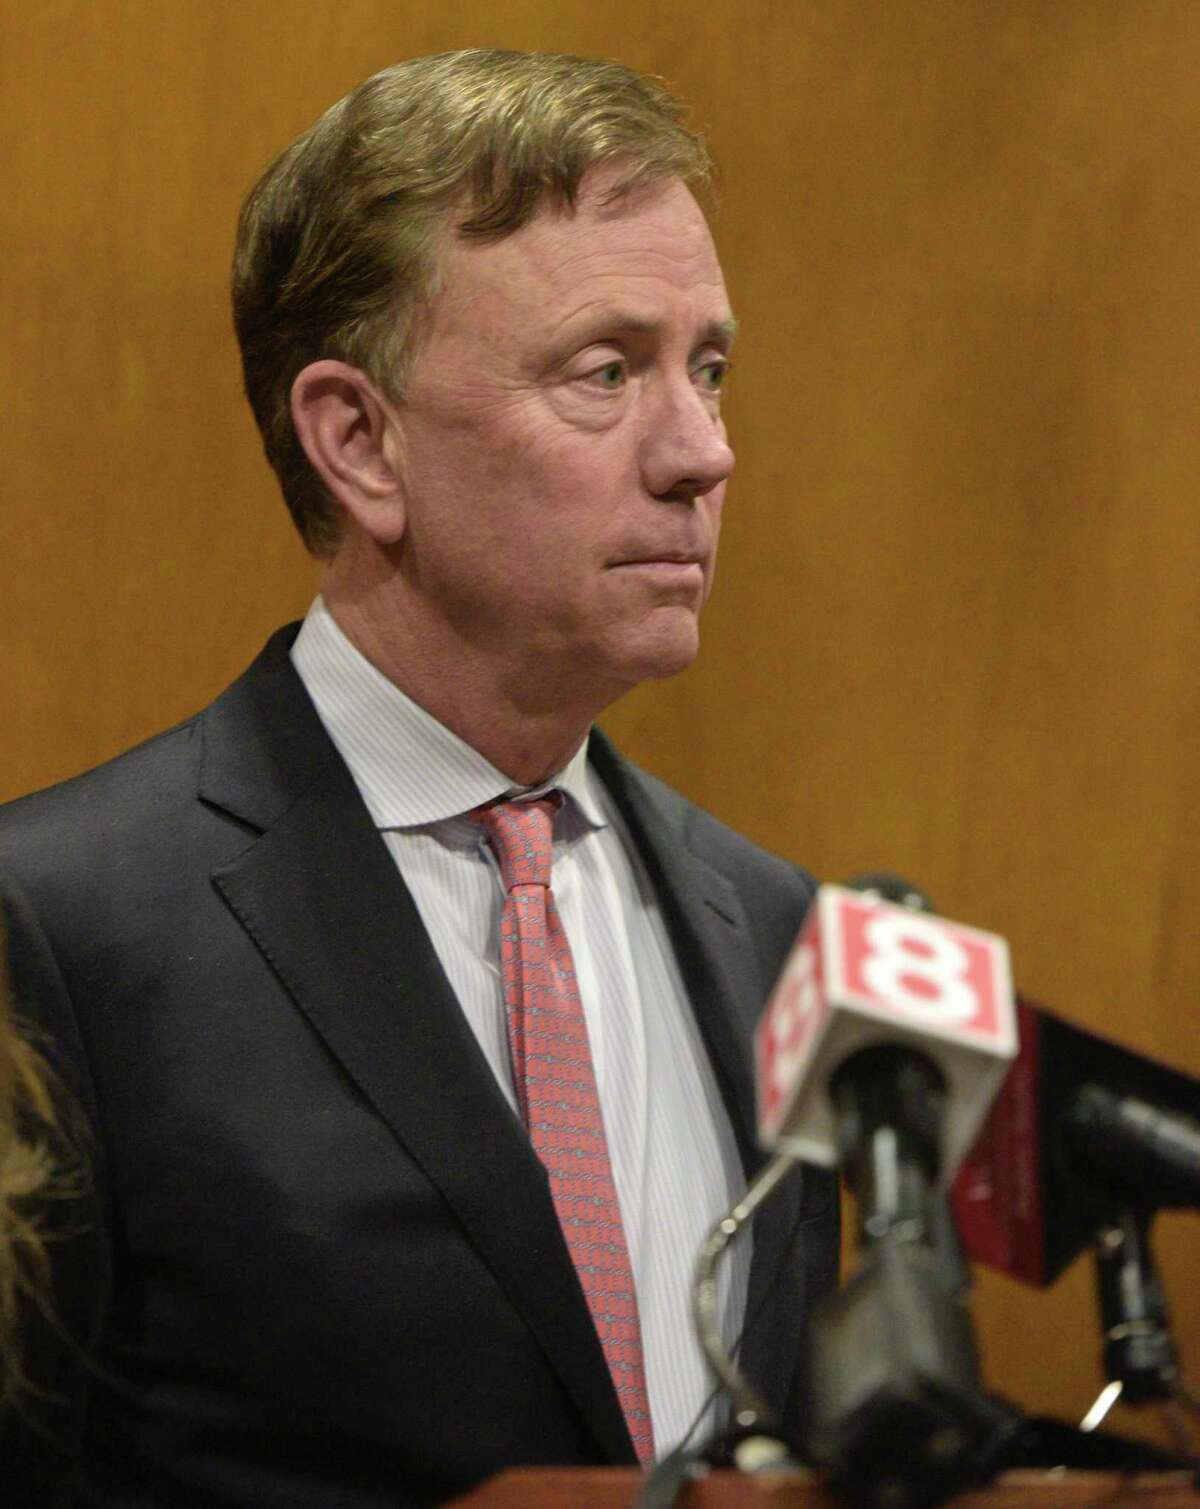 Governor Ned Lamont was joined by state and local officials in a news conference to announce details of an employee from Danbury and Norwalk Hospitals that has tested positive for COVID-19. Friday, March 6, 2020, at City Hall, Danbury, Conn.